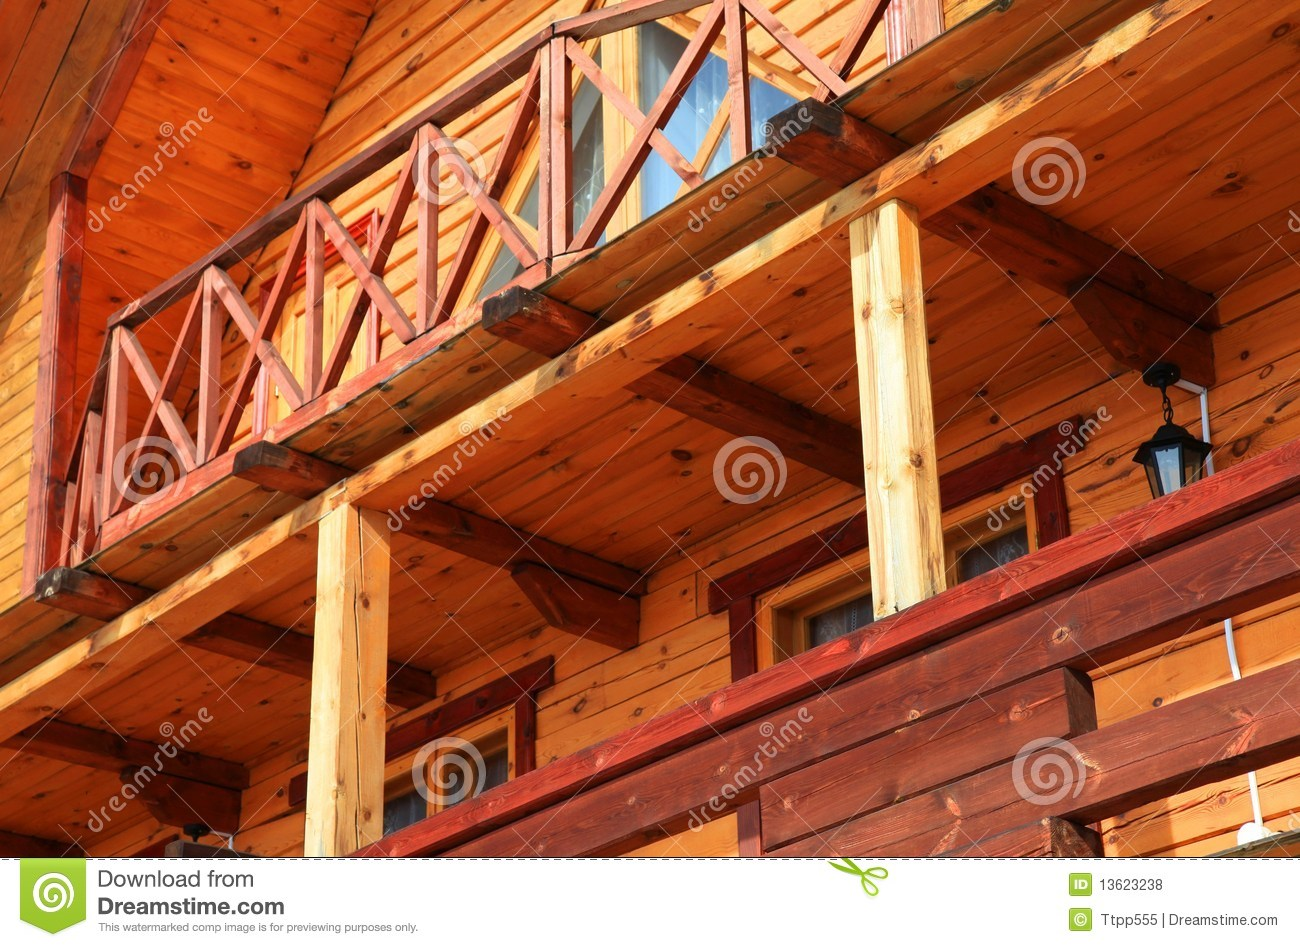 Part of wooden house